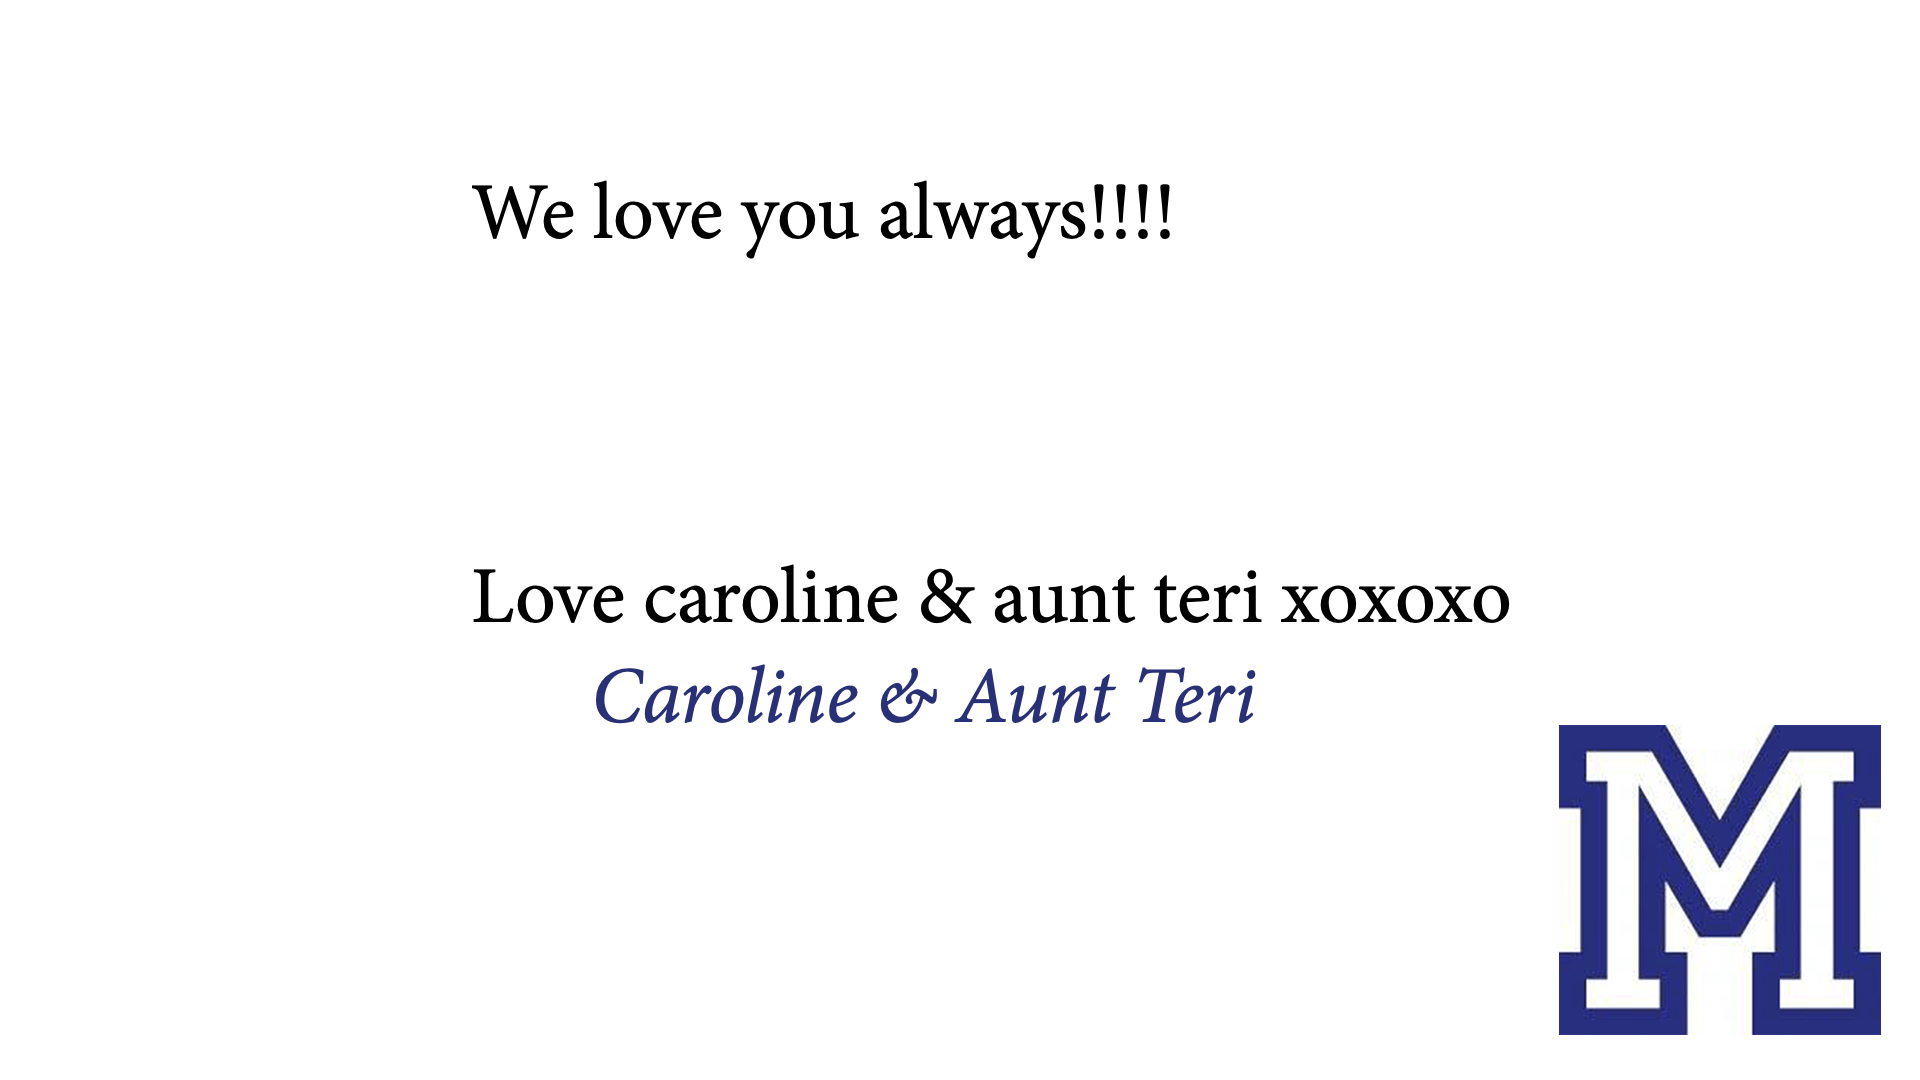 tbi_charlotte-jean-carr_3538.png